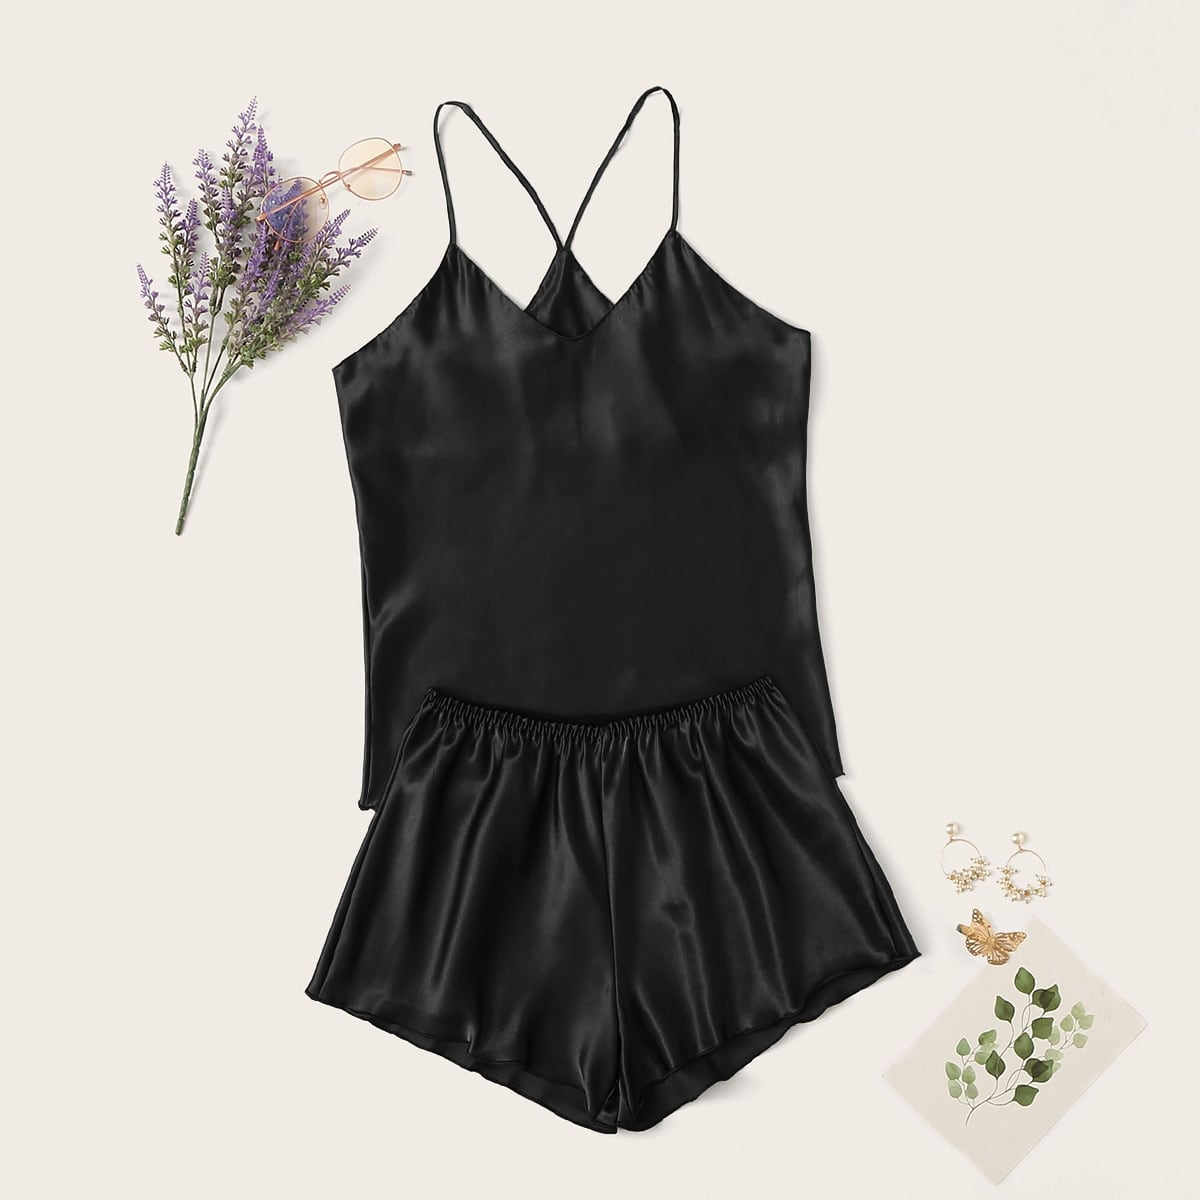 Satin Cami Top With Shorts PJ Set in Black by ROMWE on GOOFASH